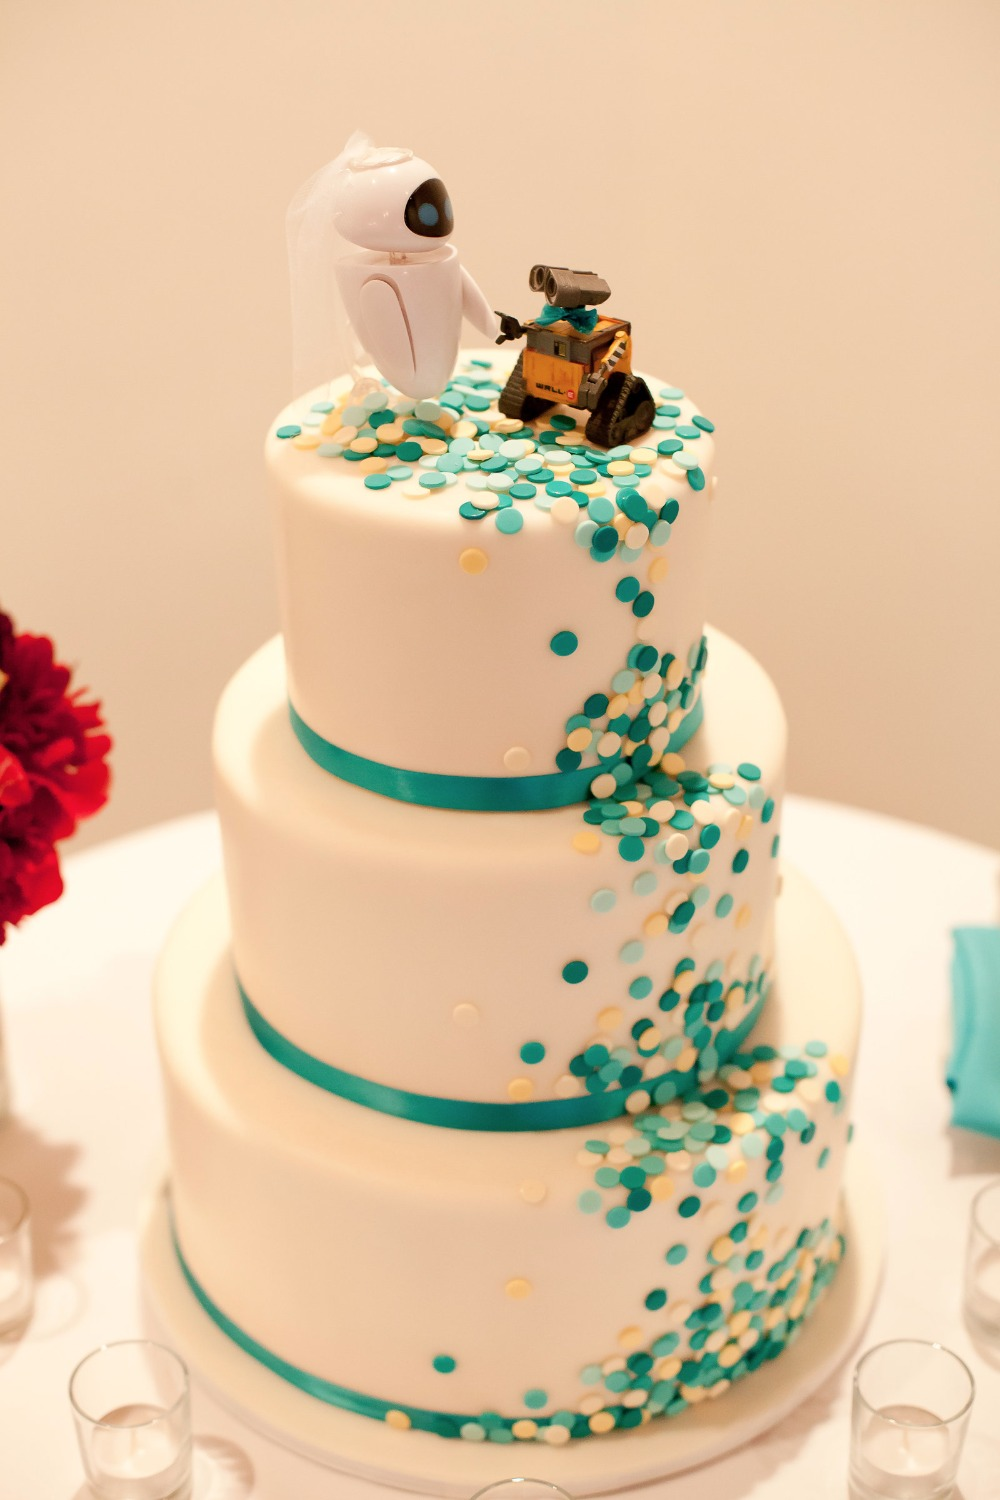 cute confetti wedding cake with Wall-E themed cake topper